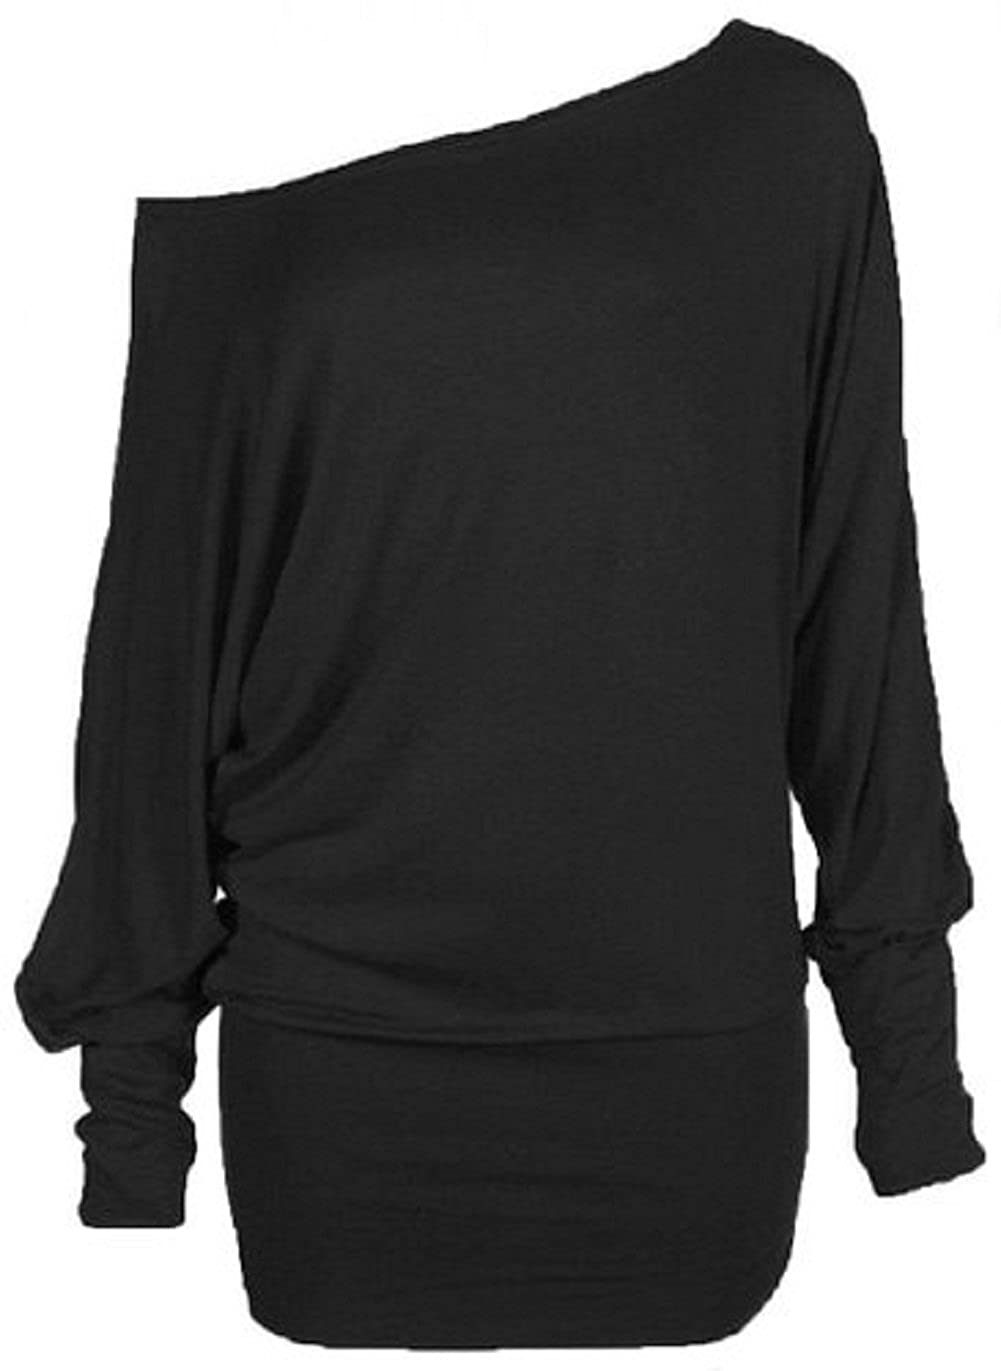 45fee65fe Top7: ZJ Clothes Womens Long Sleeve Off Shoulder Plain Batwing Top